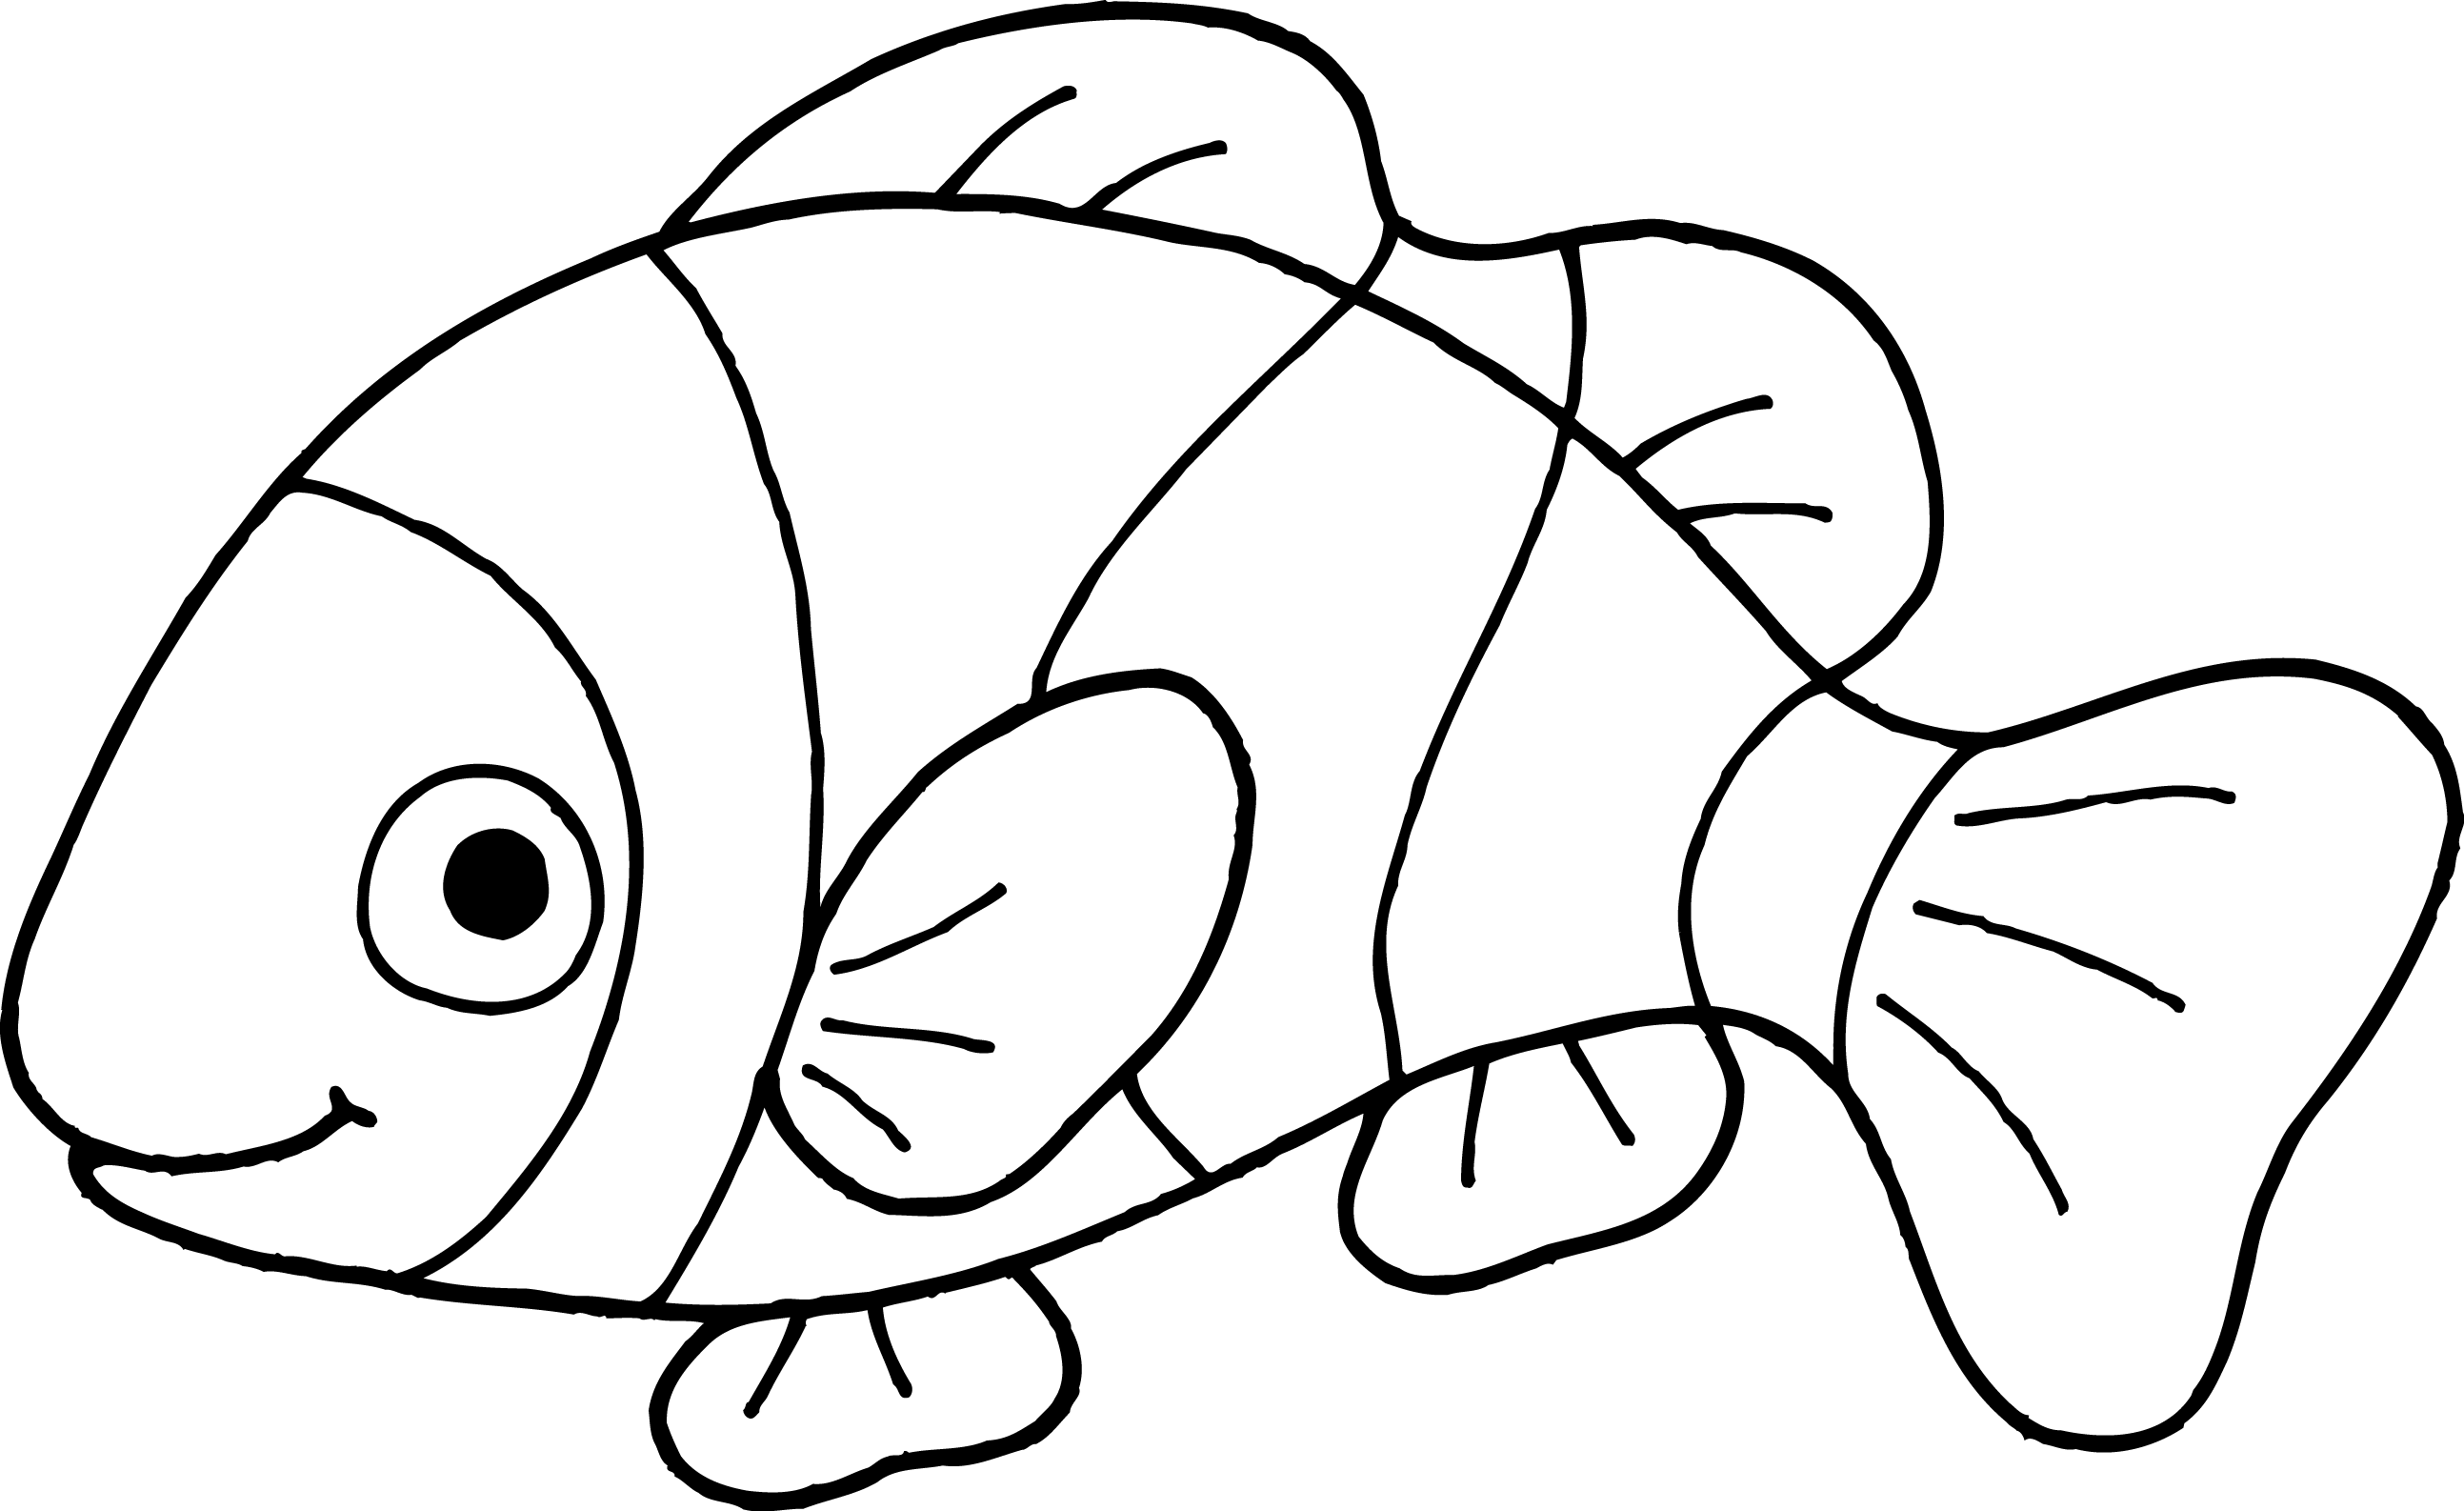 Fish with bubbles clipart black and white clip art free library Black-and-white, often abbreviated B/W or B&W, is a term referring ... clip art free library